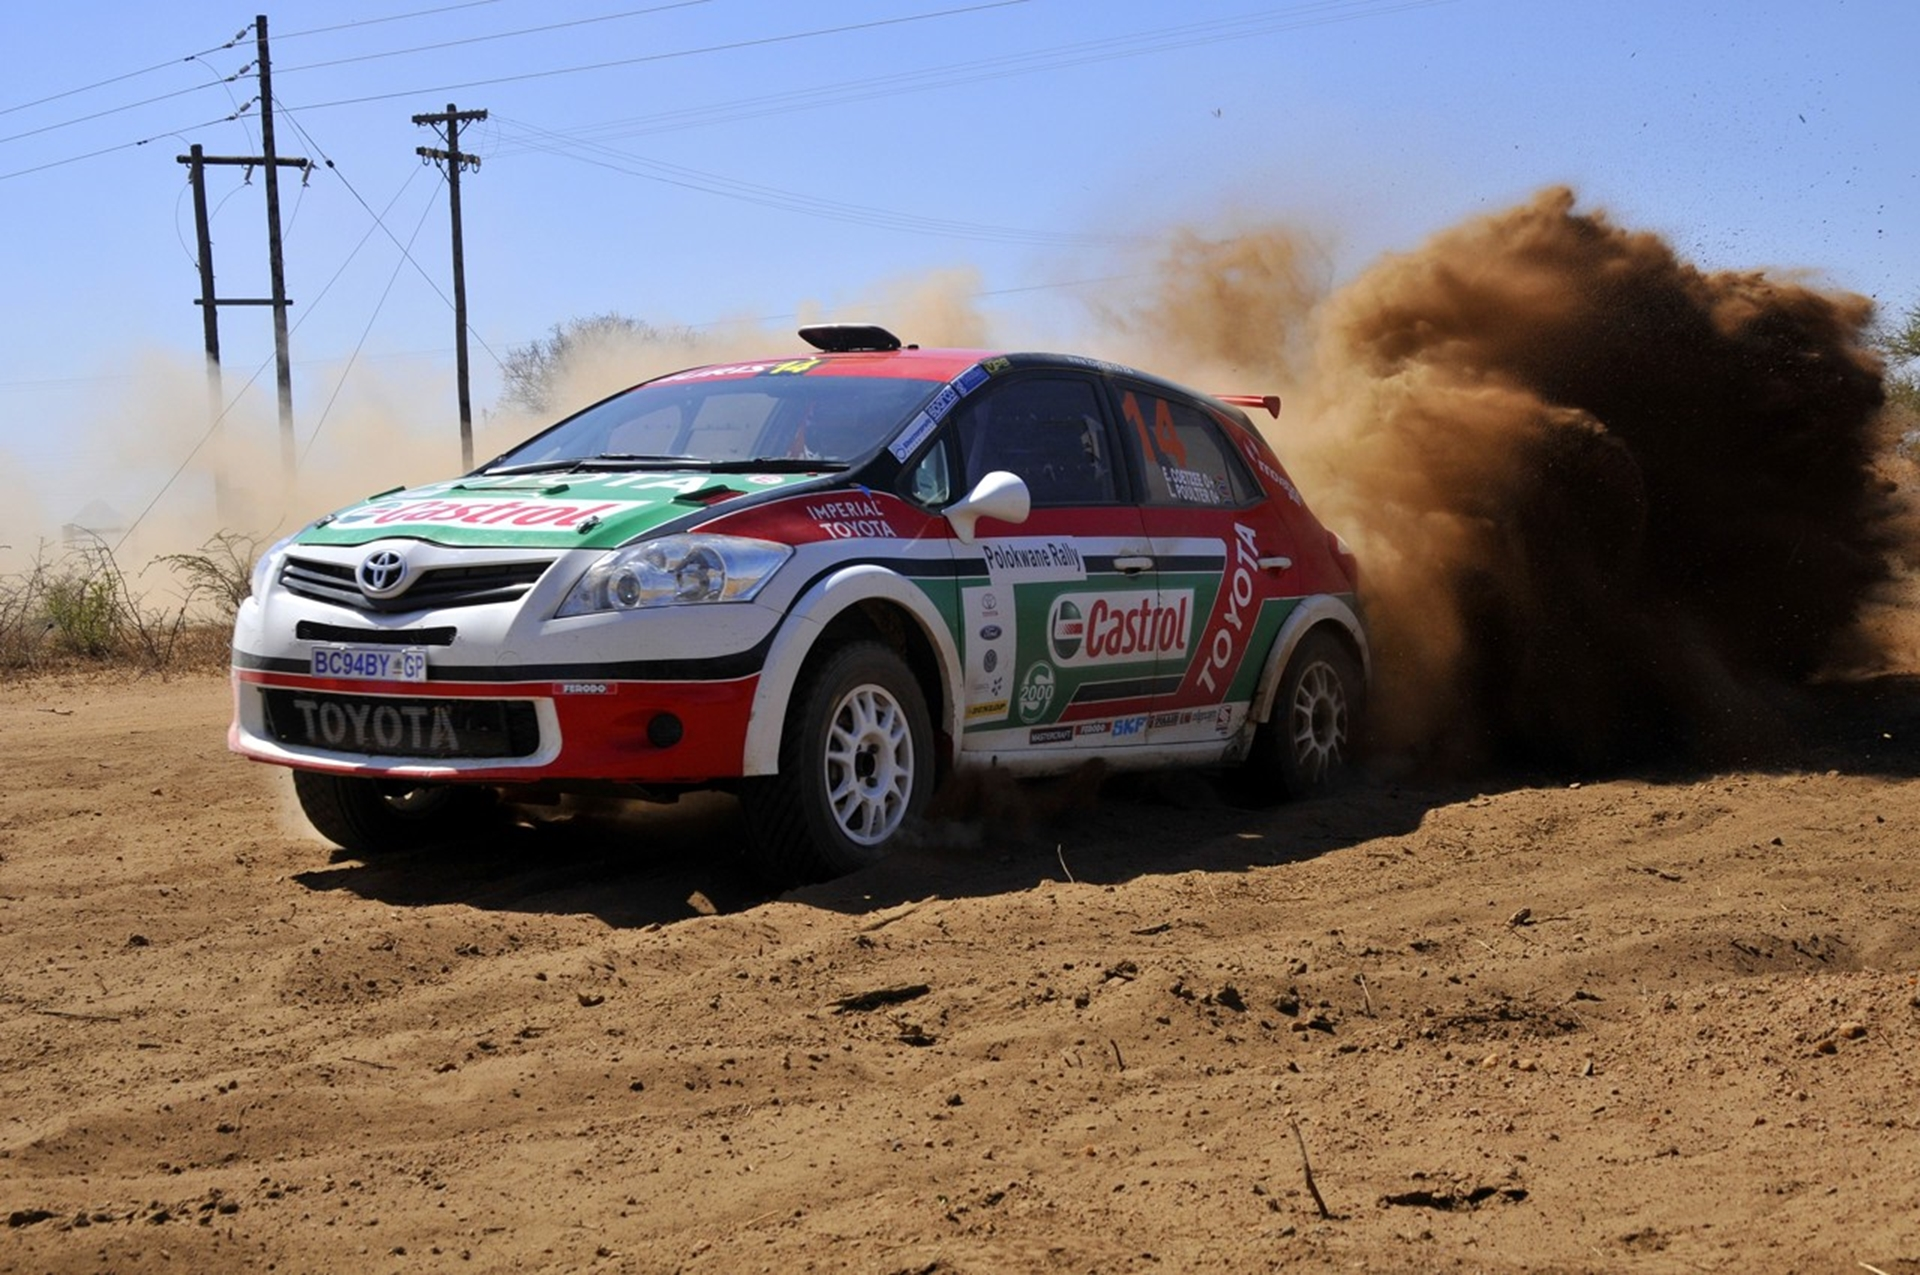 Toyota South Africa Racing